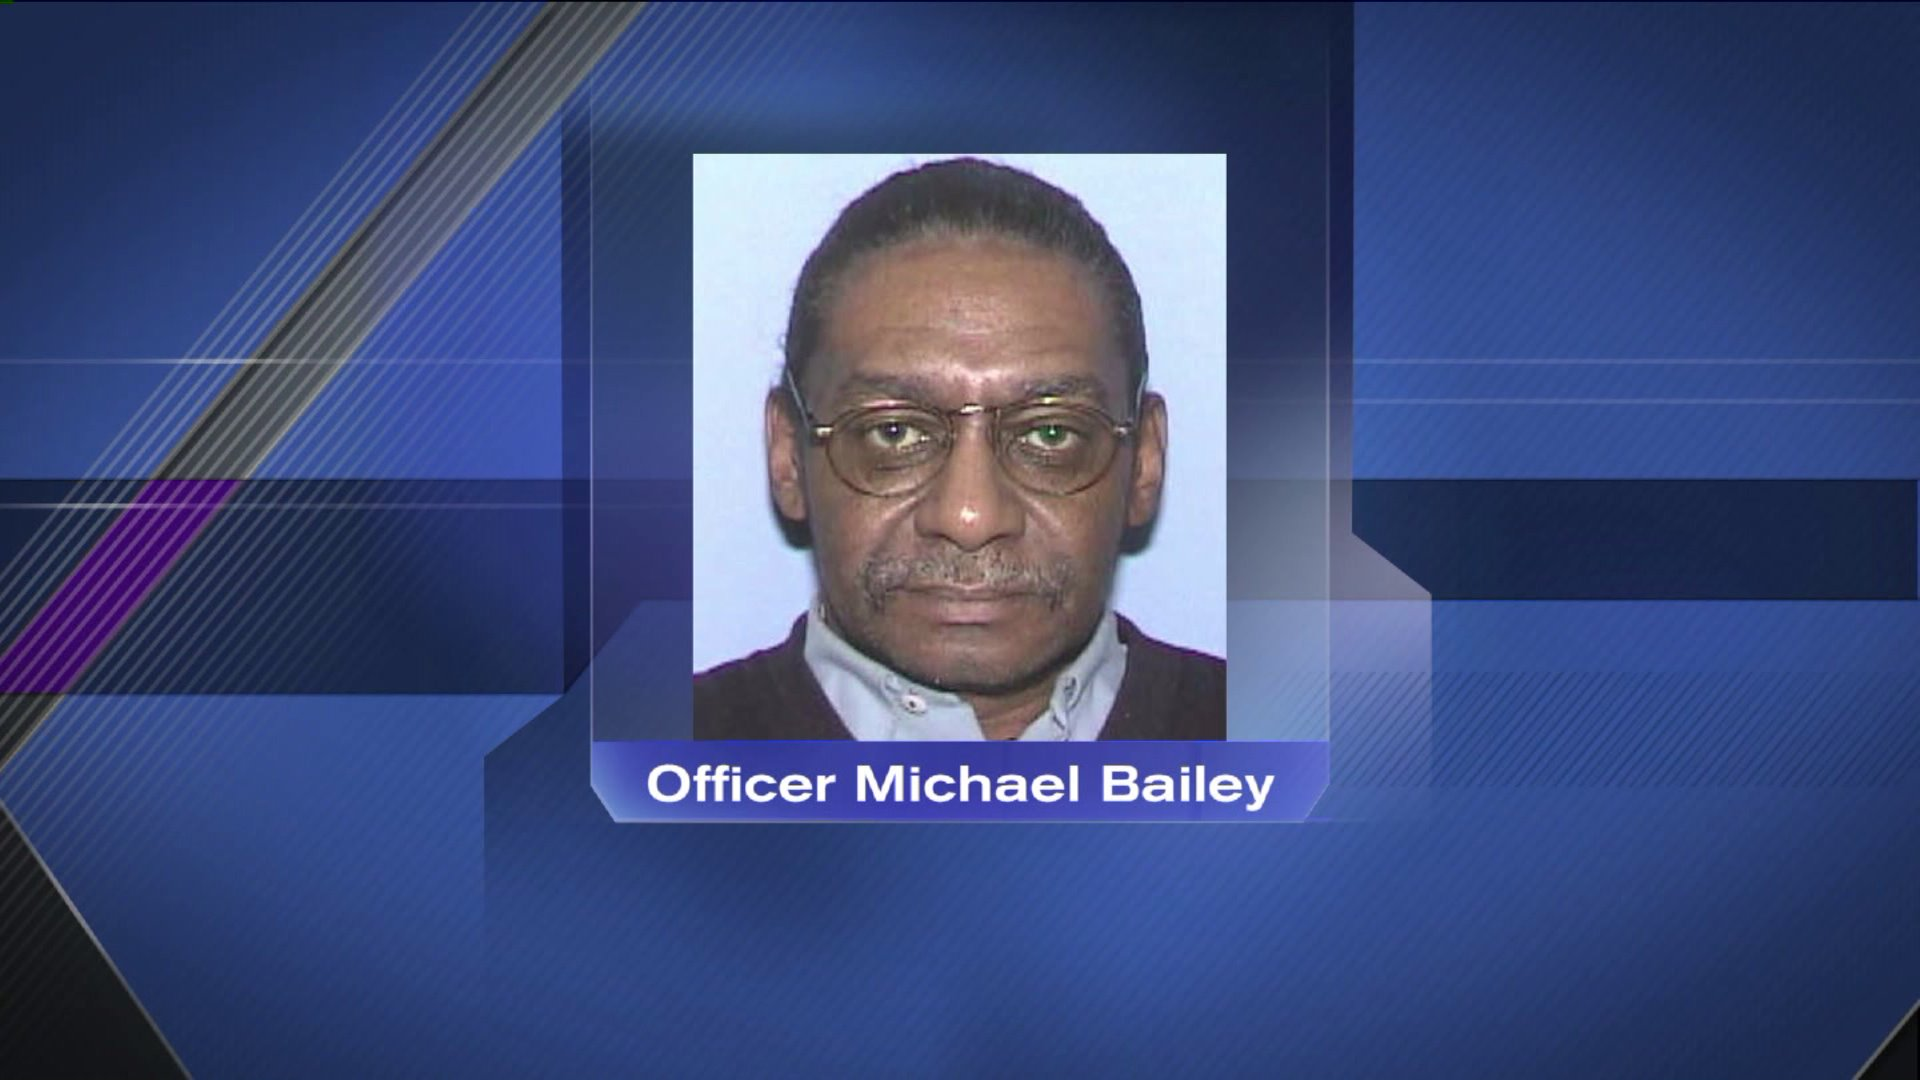 officermichaelbailey